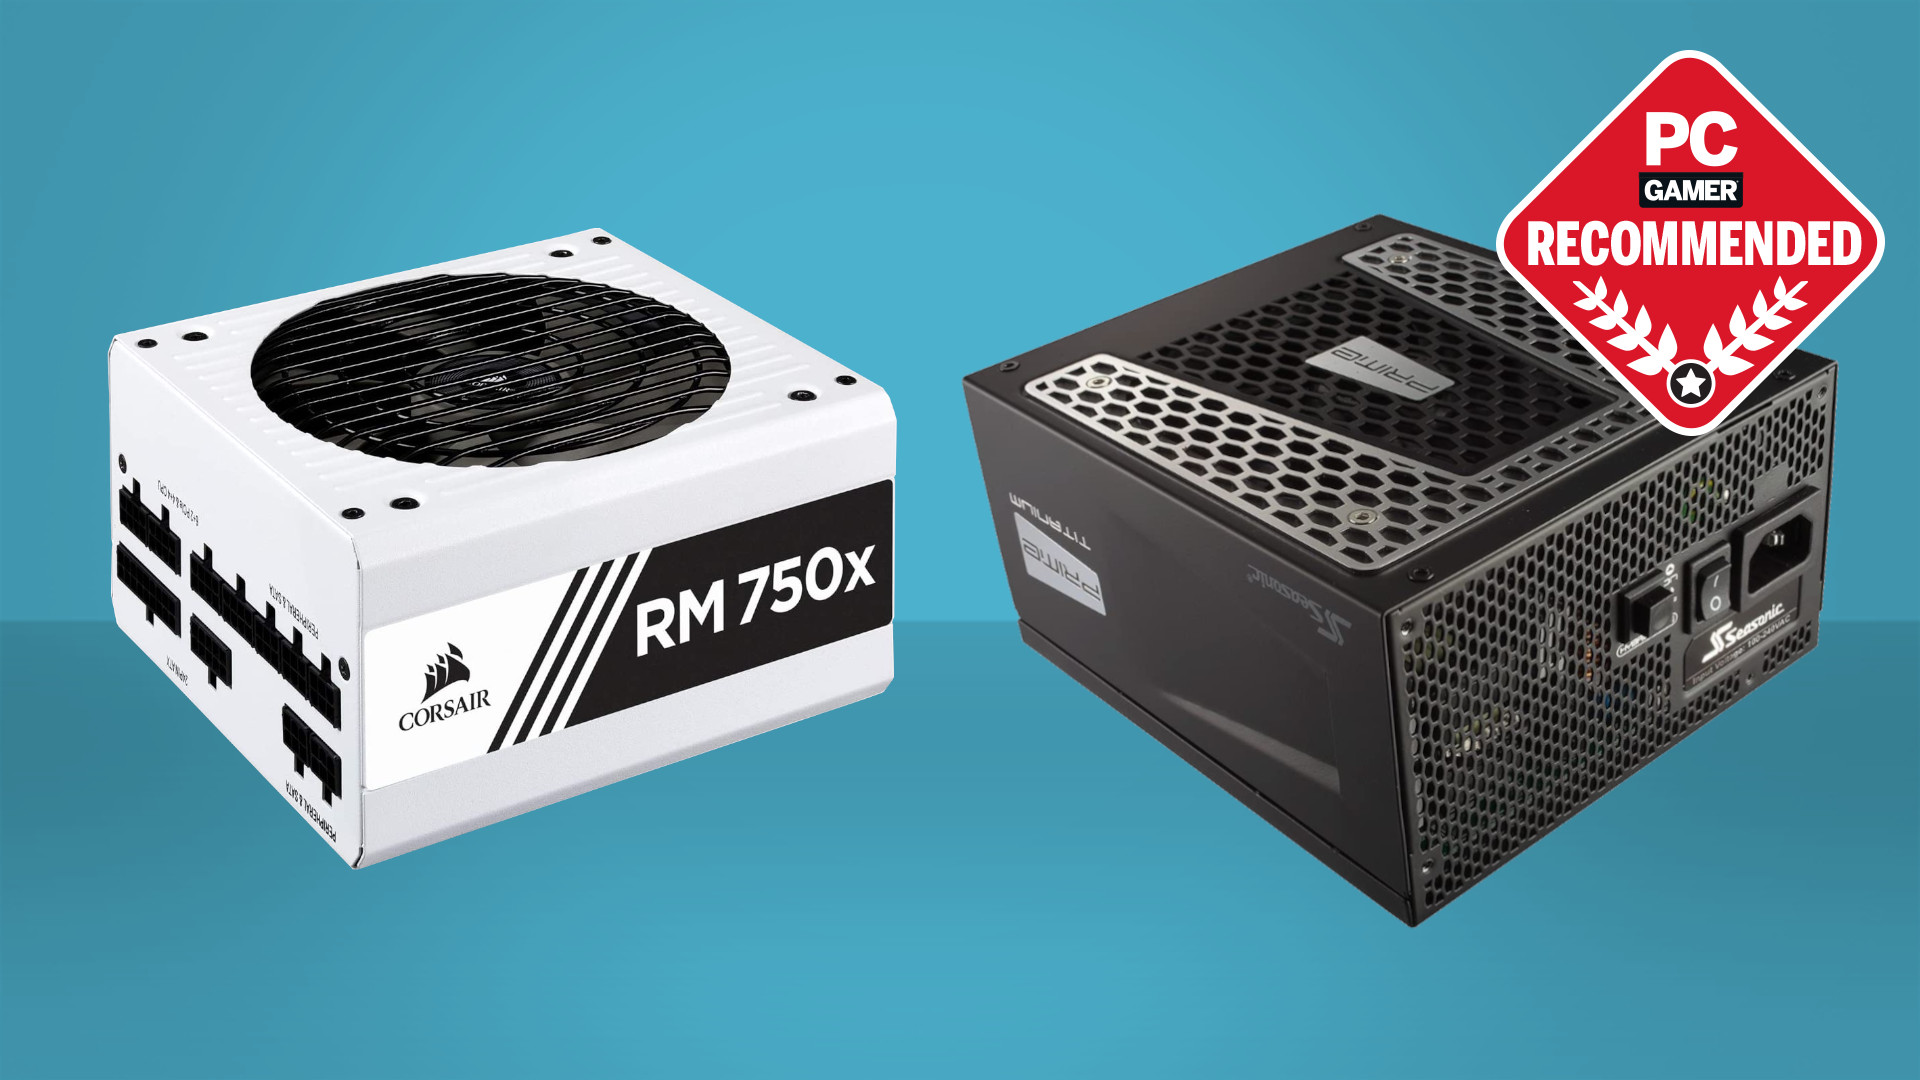 Two of the best power supply units for PC gaming from Corsair and Seasonic